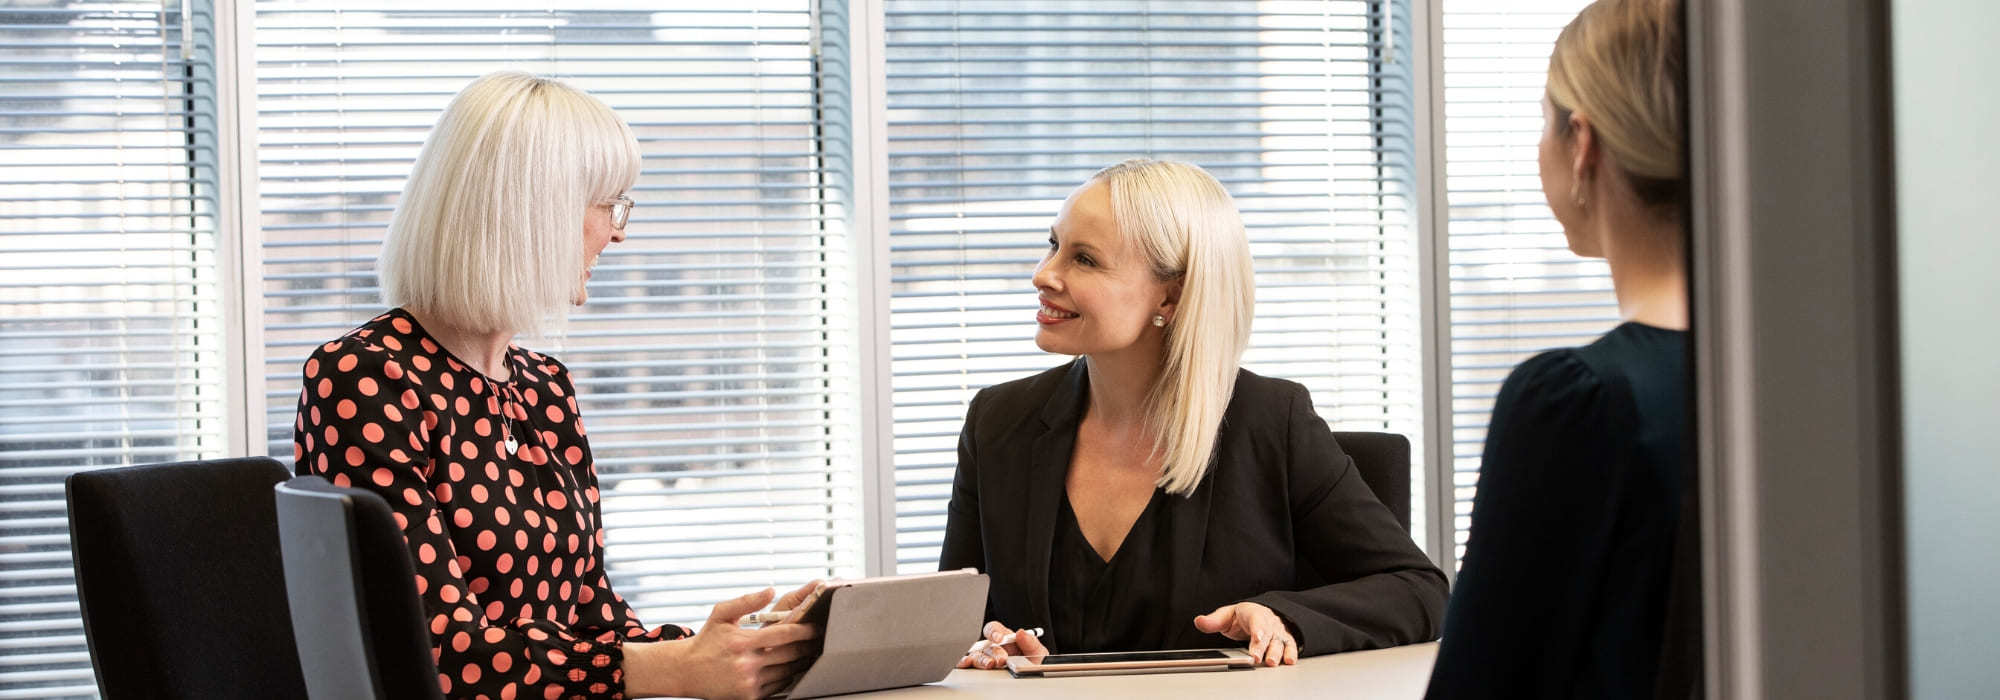 Entree Recruitment Careers Amenities and Benefits